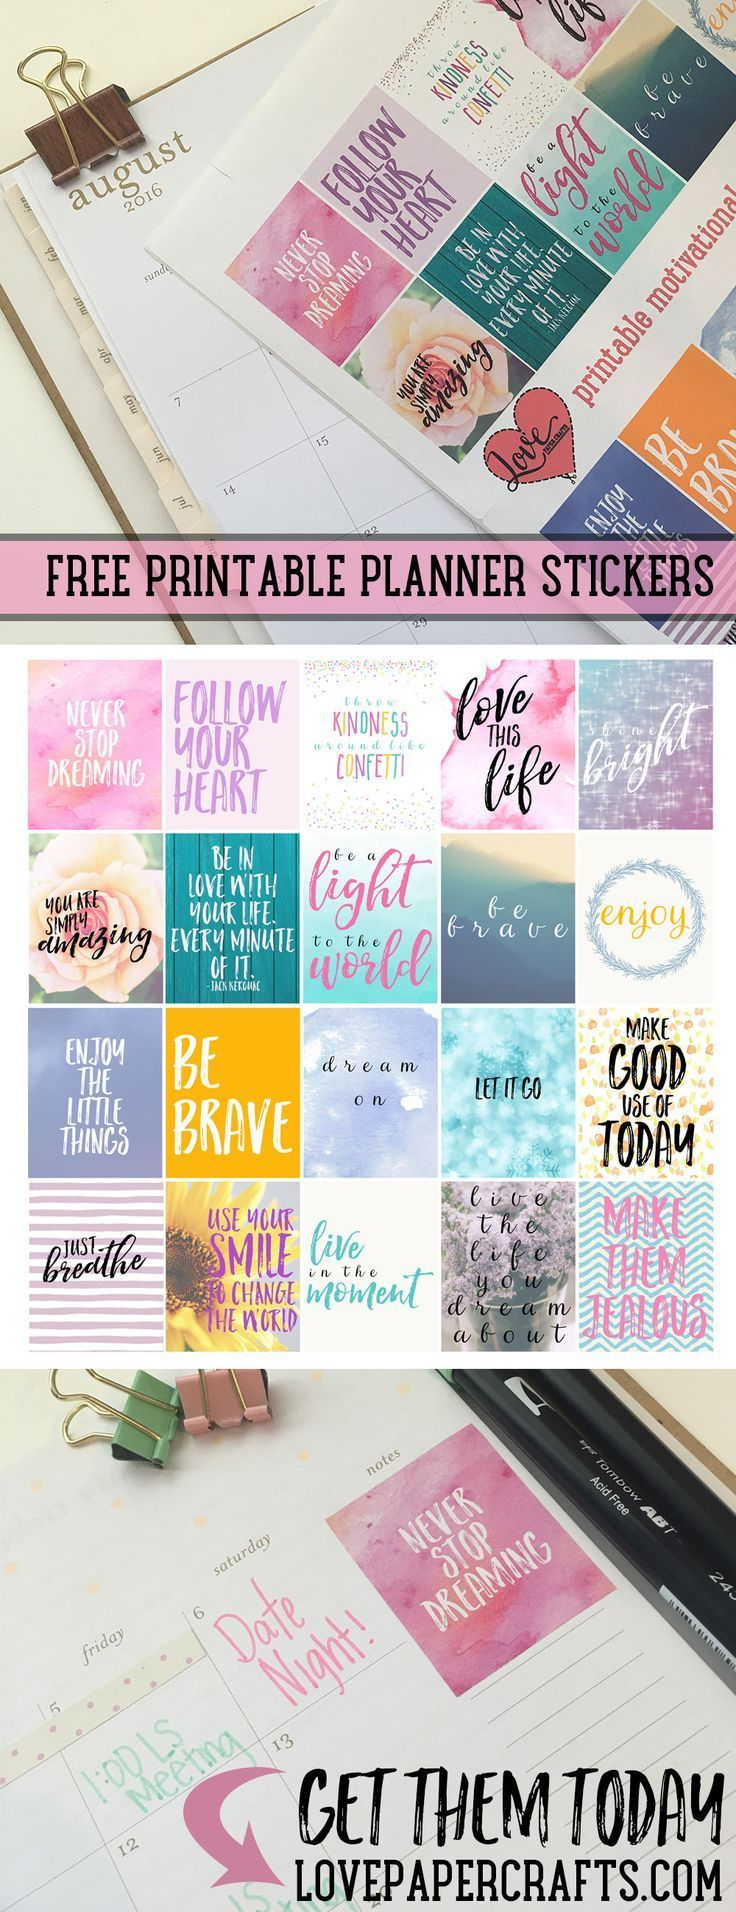 Free printable motivational planner stickers | http://LovePaperCrafts.com